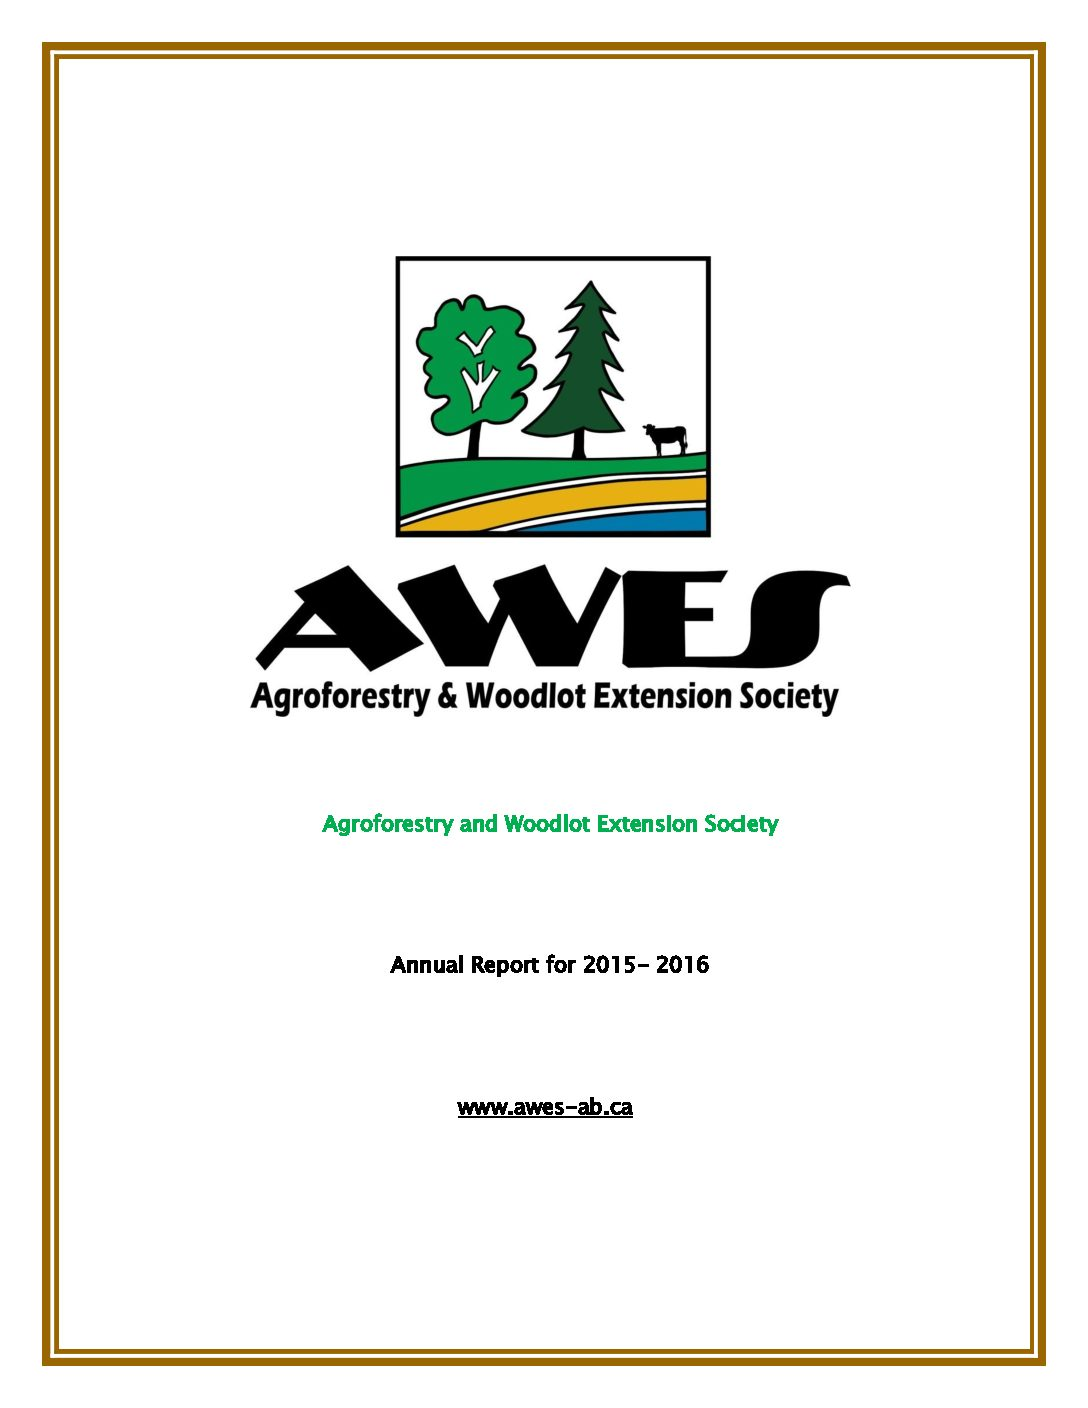 AWES Annual Report 2015-2016